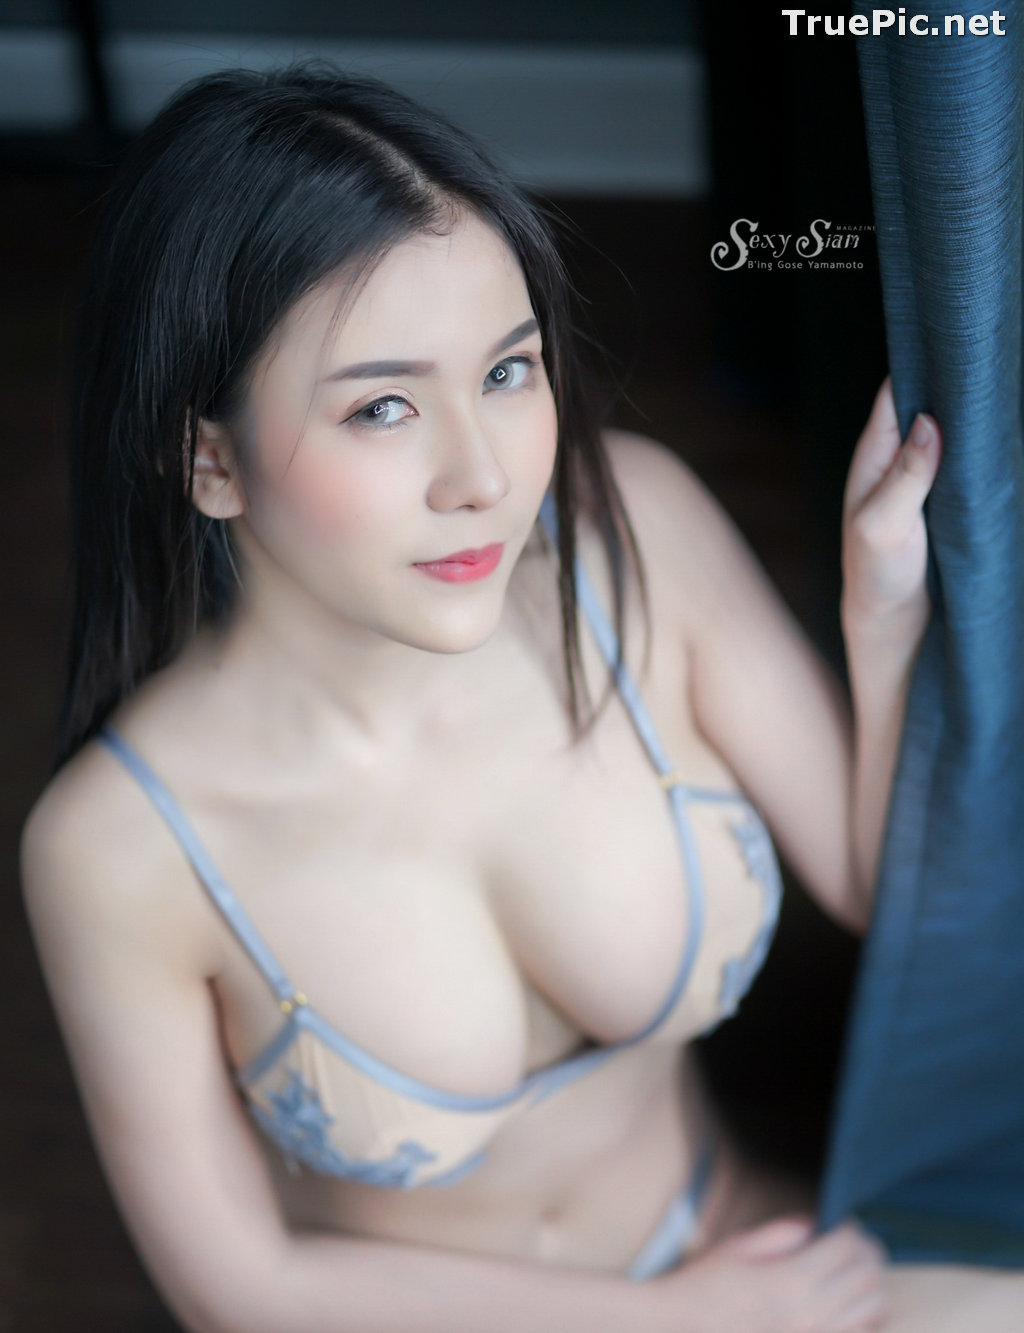 Image Thailand Model - Kitchawat Sainonsee - Let Me Tell You a Story - TruePic.net - Picture-9